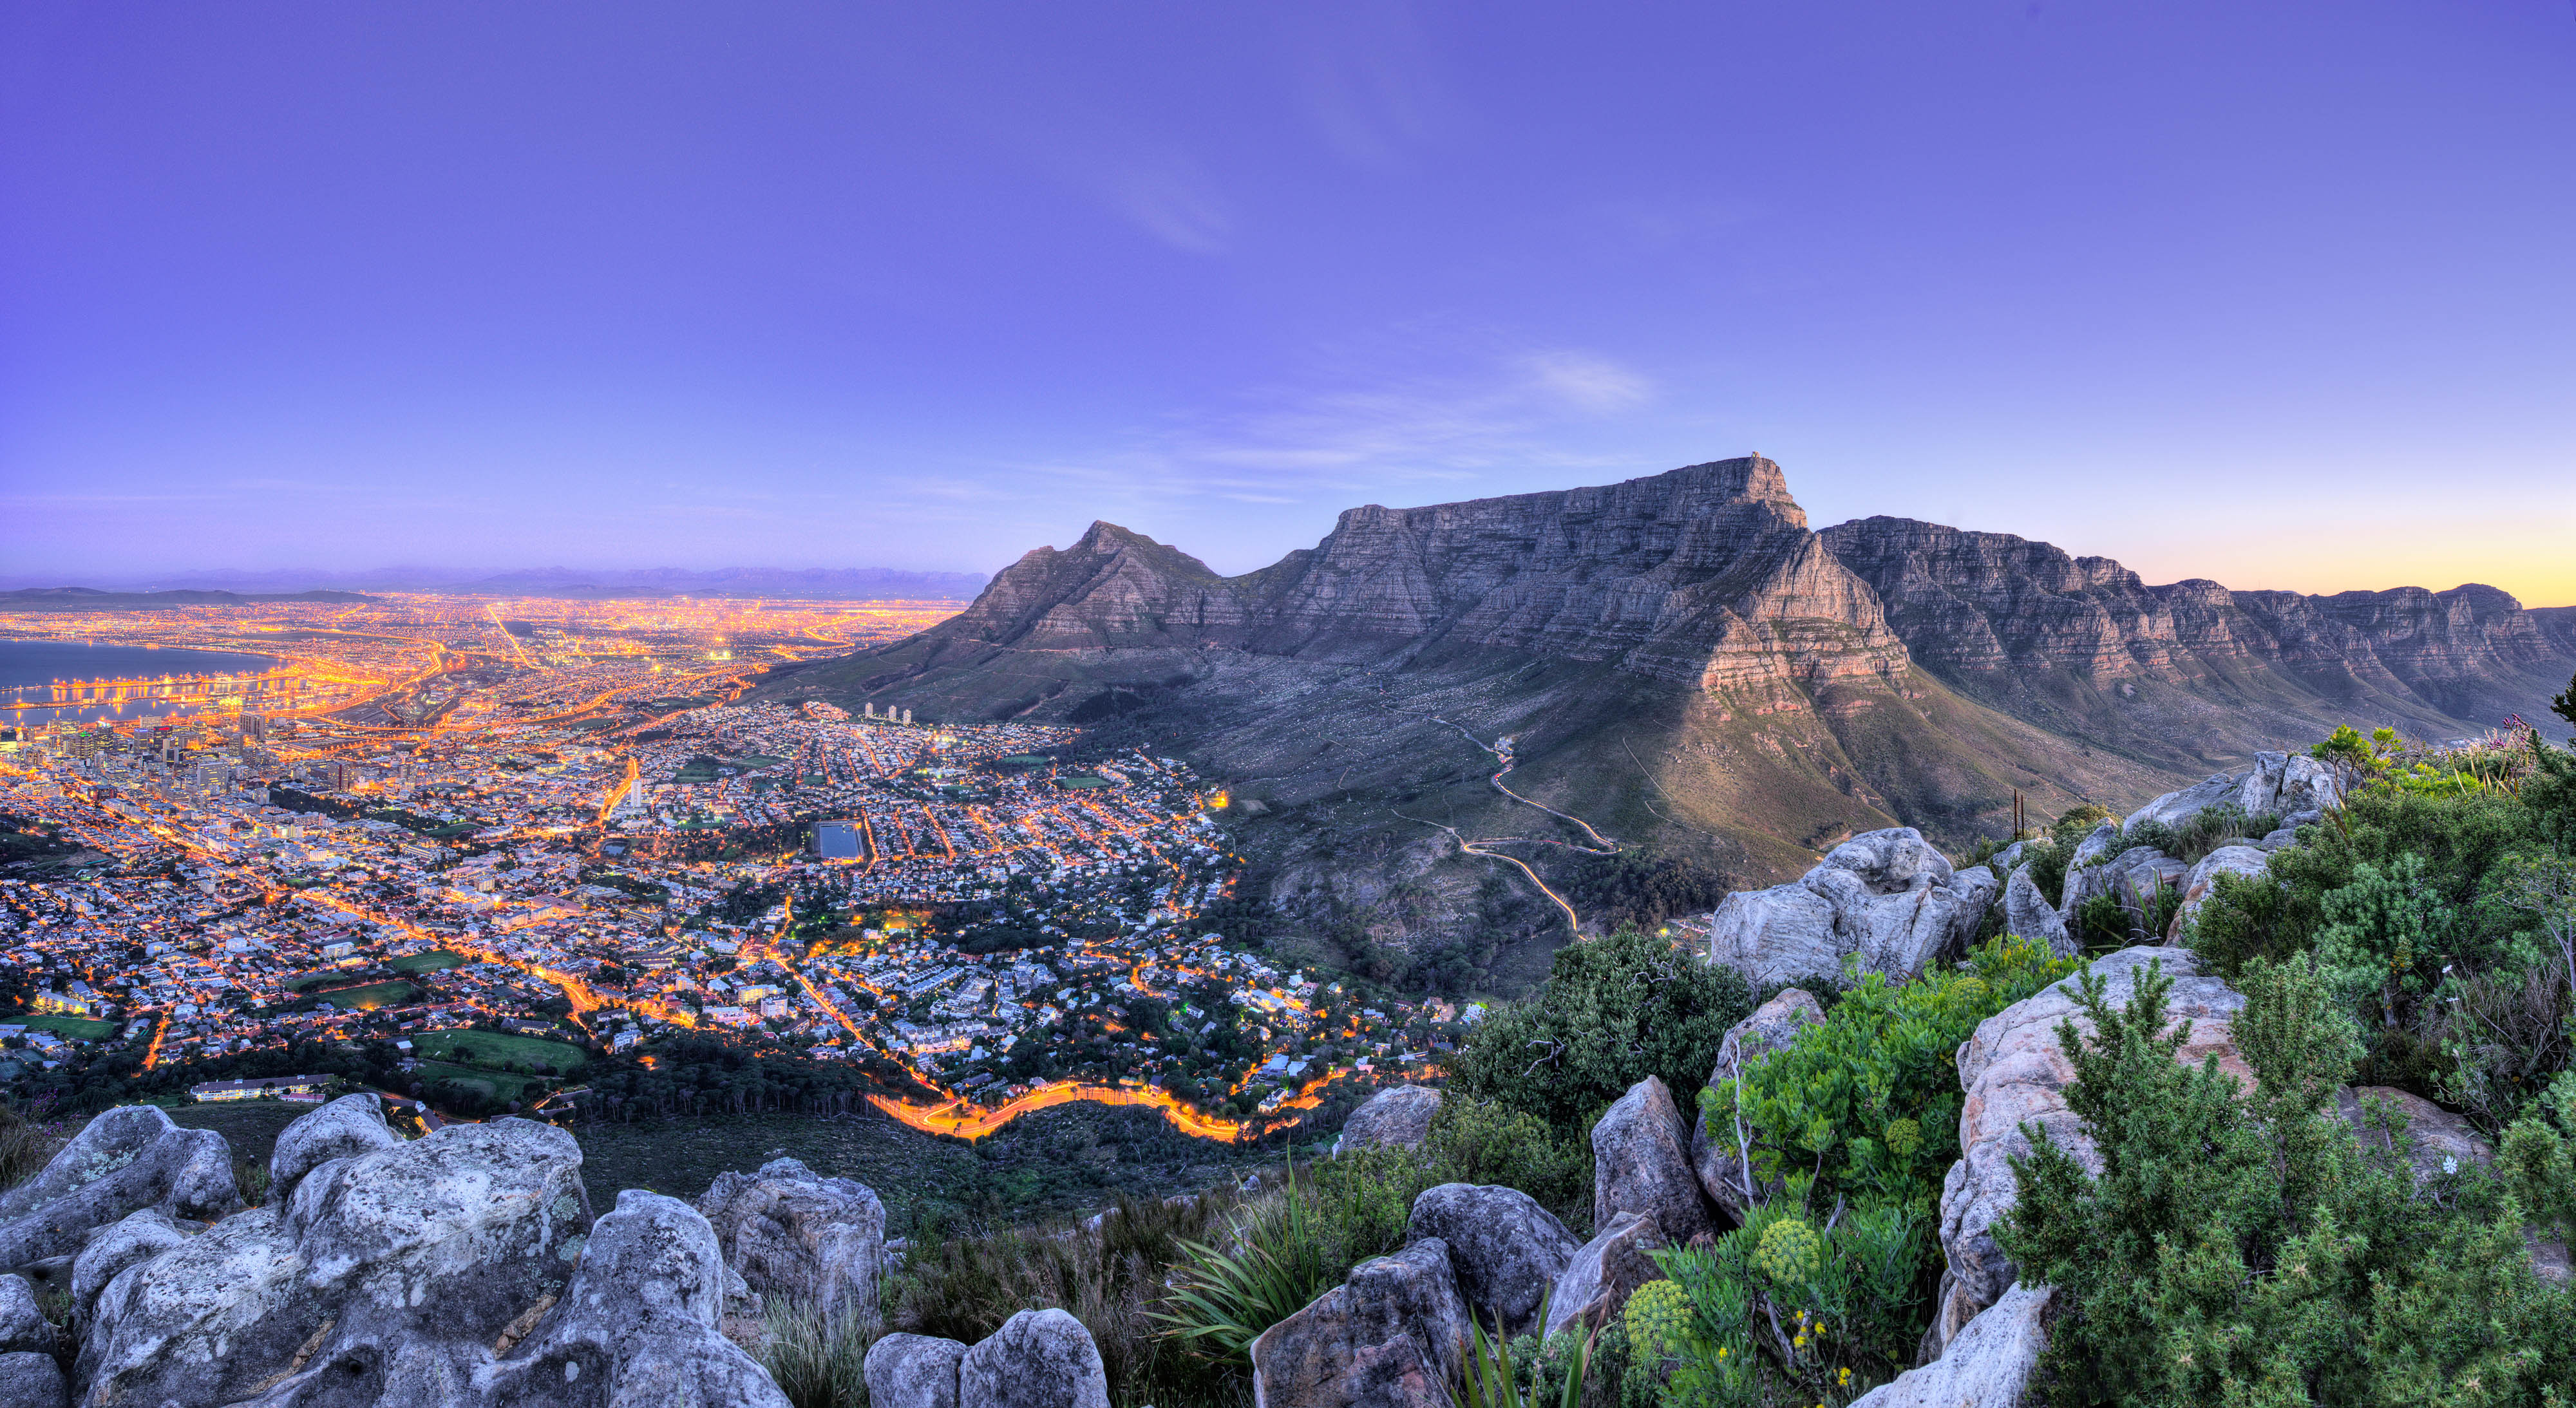 View of Cape Town, South Africa, at dusk